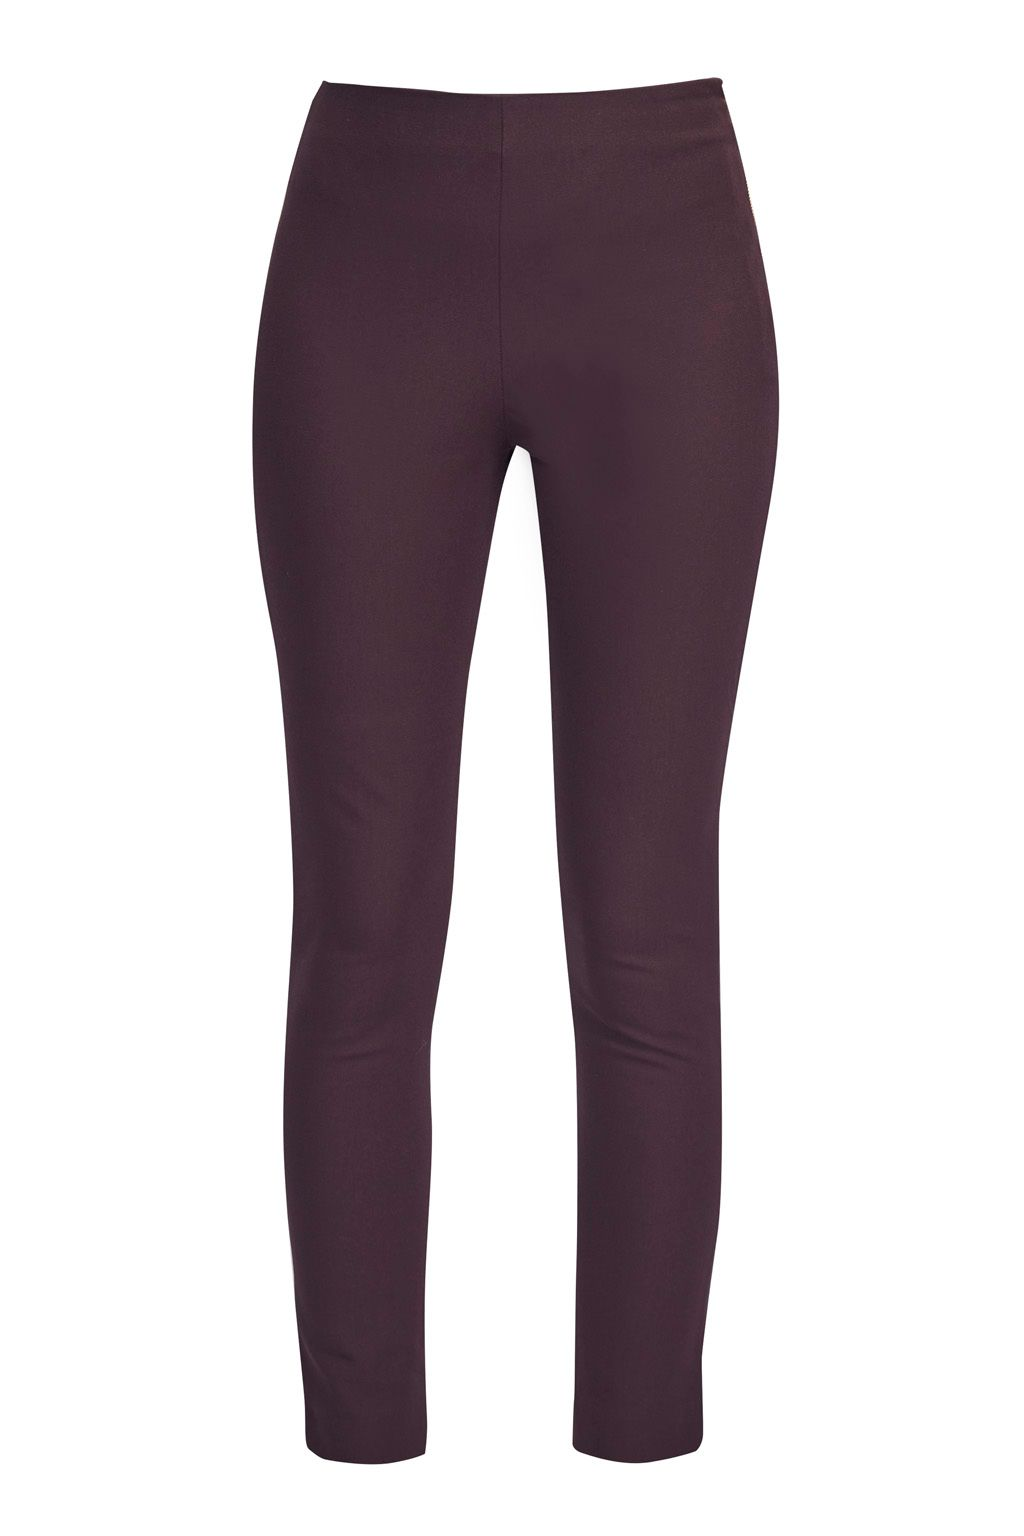 French Connection Street Twill Skinny Trousers, Purple